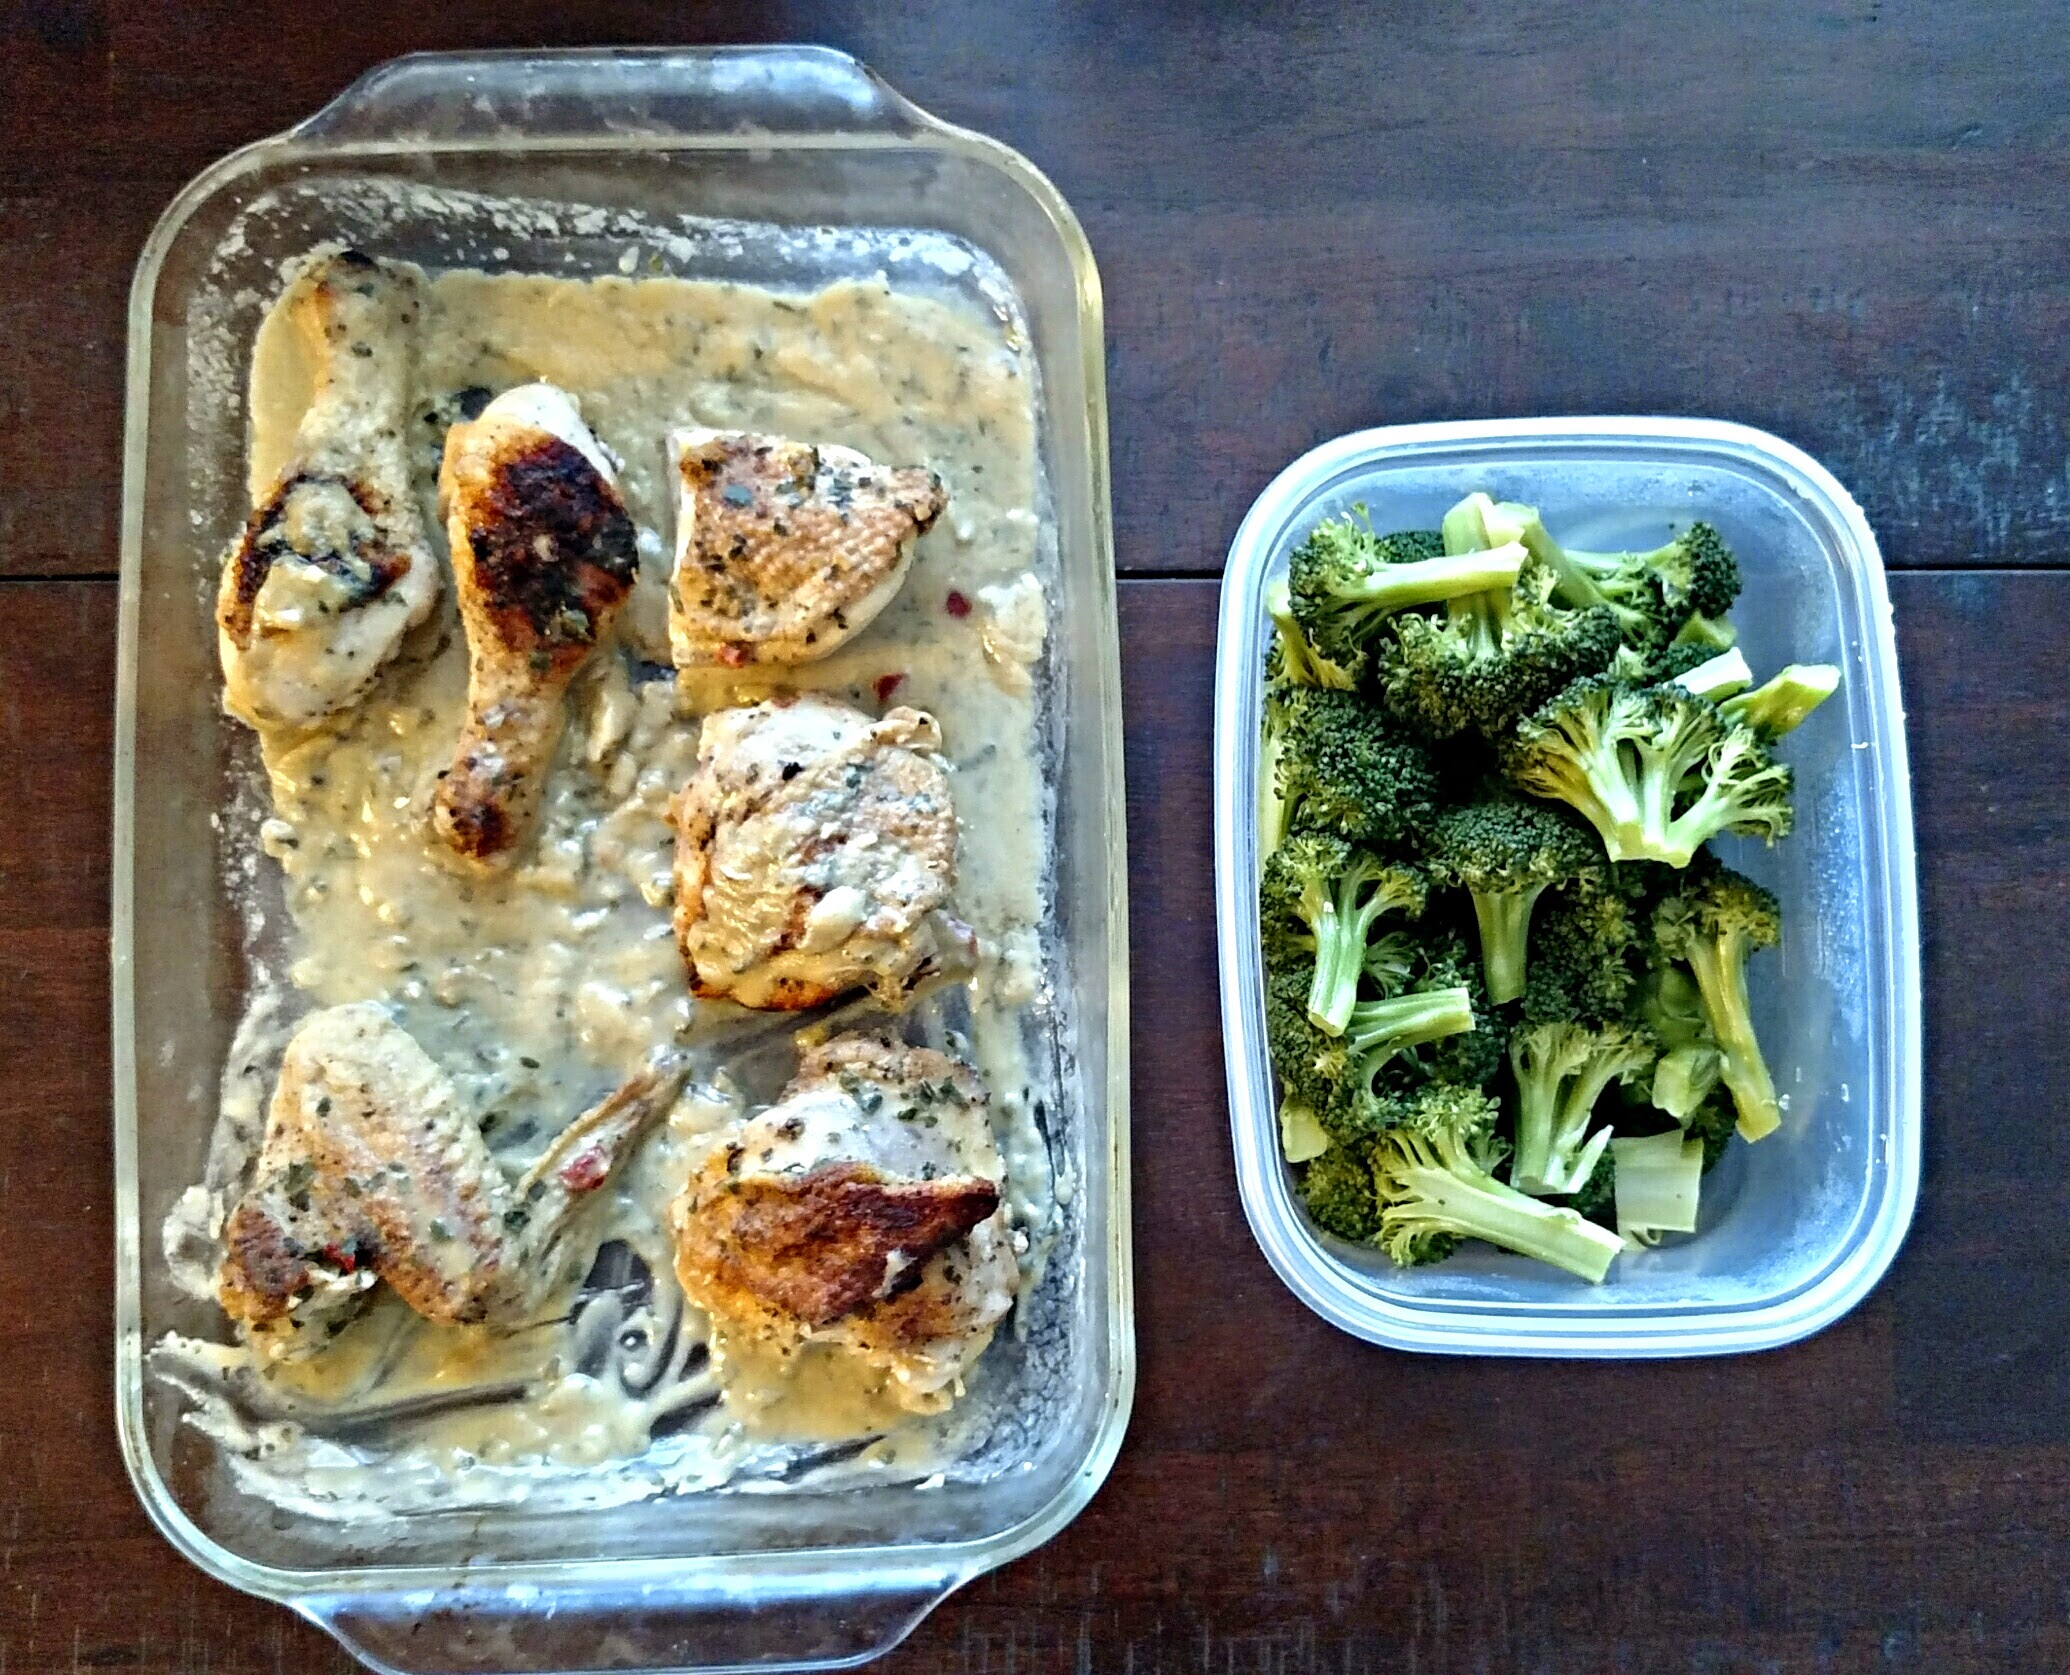 pan fried then oven roasted whole chicken with easy herb gravy & Steamed broccoli.